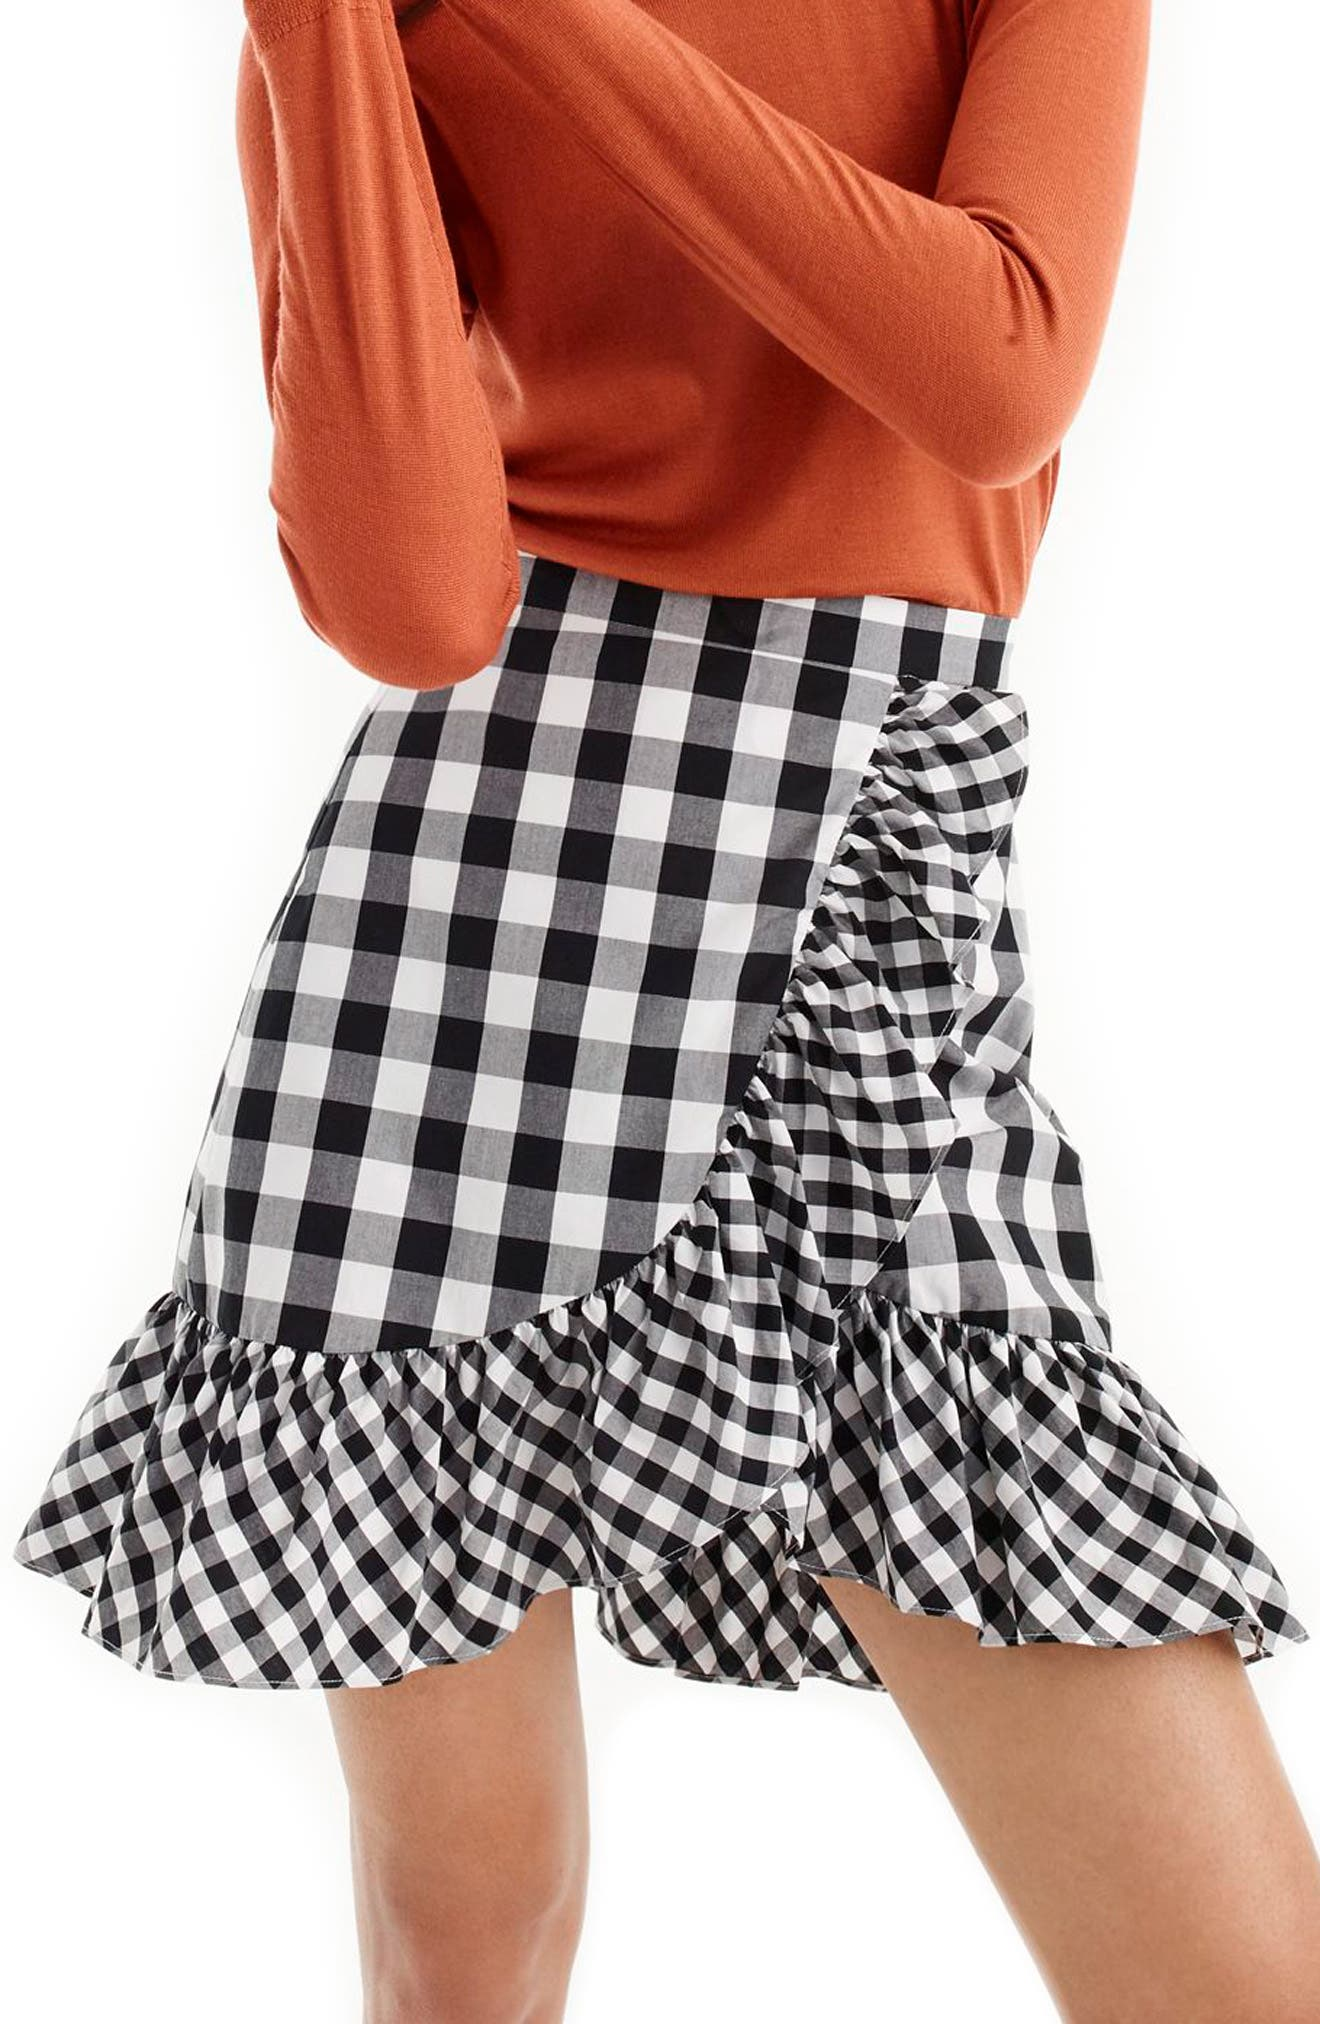 Pistachio Gingham Cotton Poplin Ruffle Skirt,                             Main thumbnail 1, color,                             Black